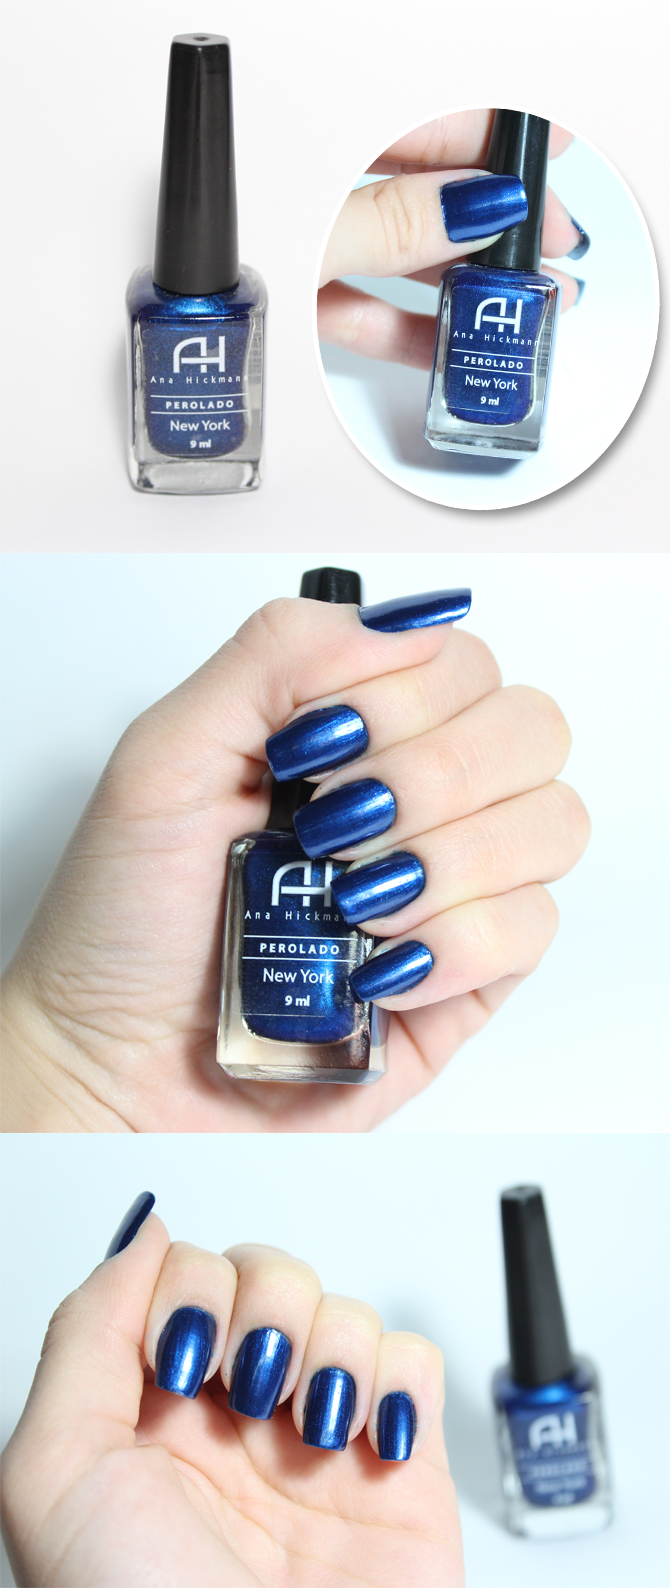 Esmalte New York copy